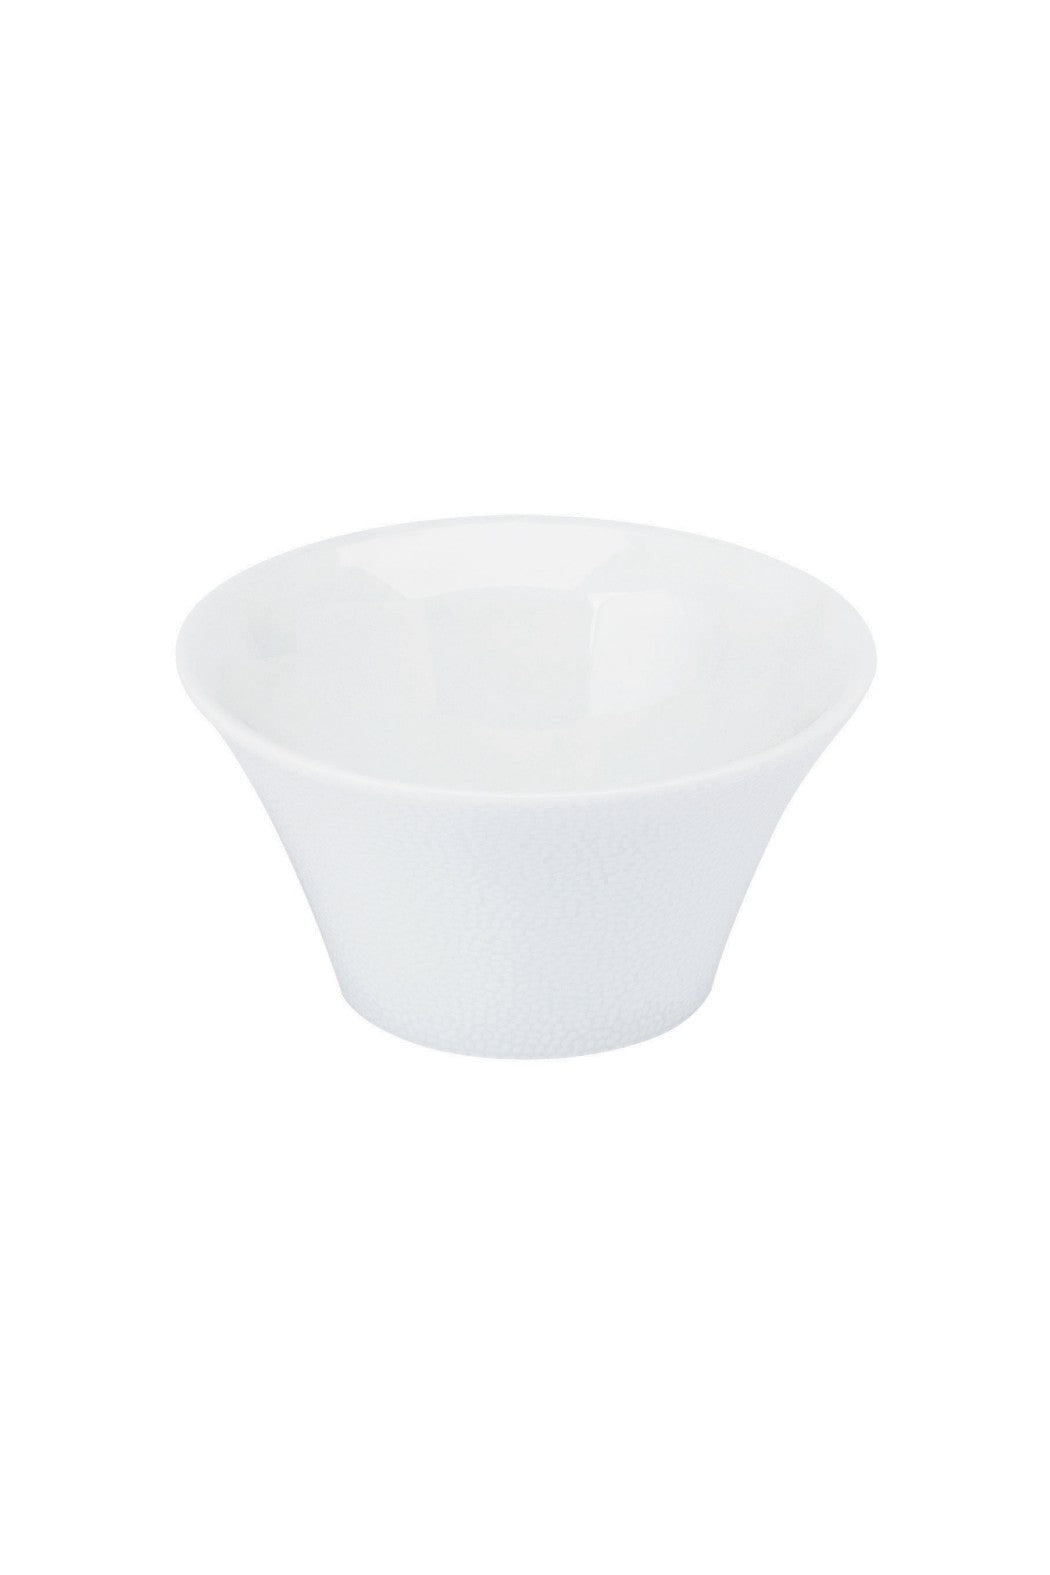 Deshoulieres Seychelles White Mini Cream Bowl Monica & David